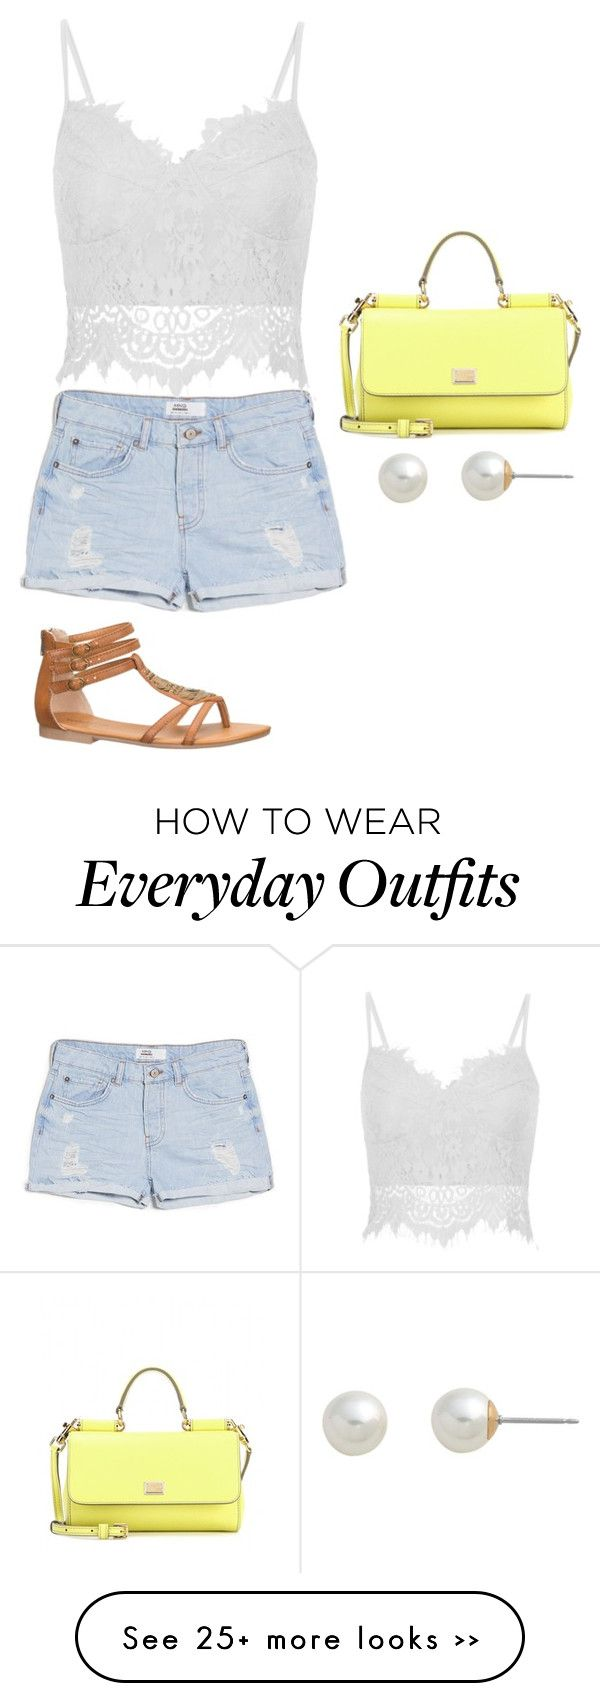 """Everyday summer outfit"" by ecullo on Polyvore"